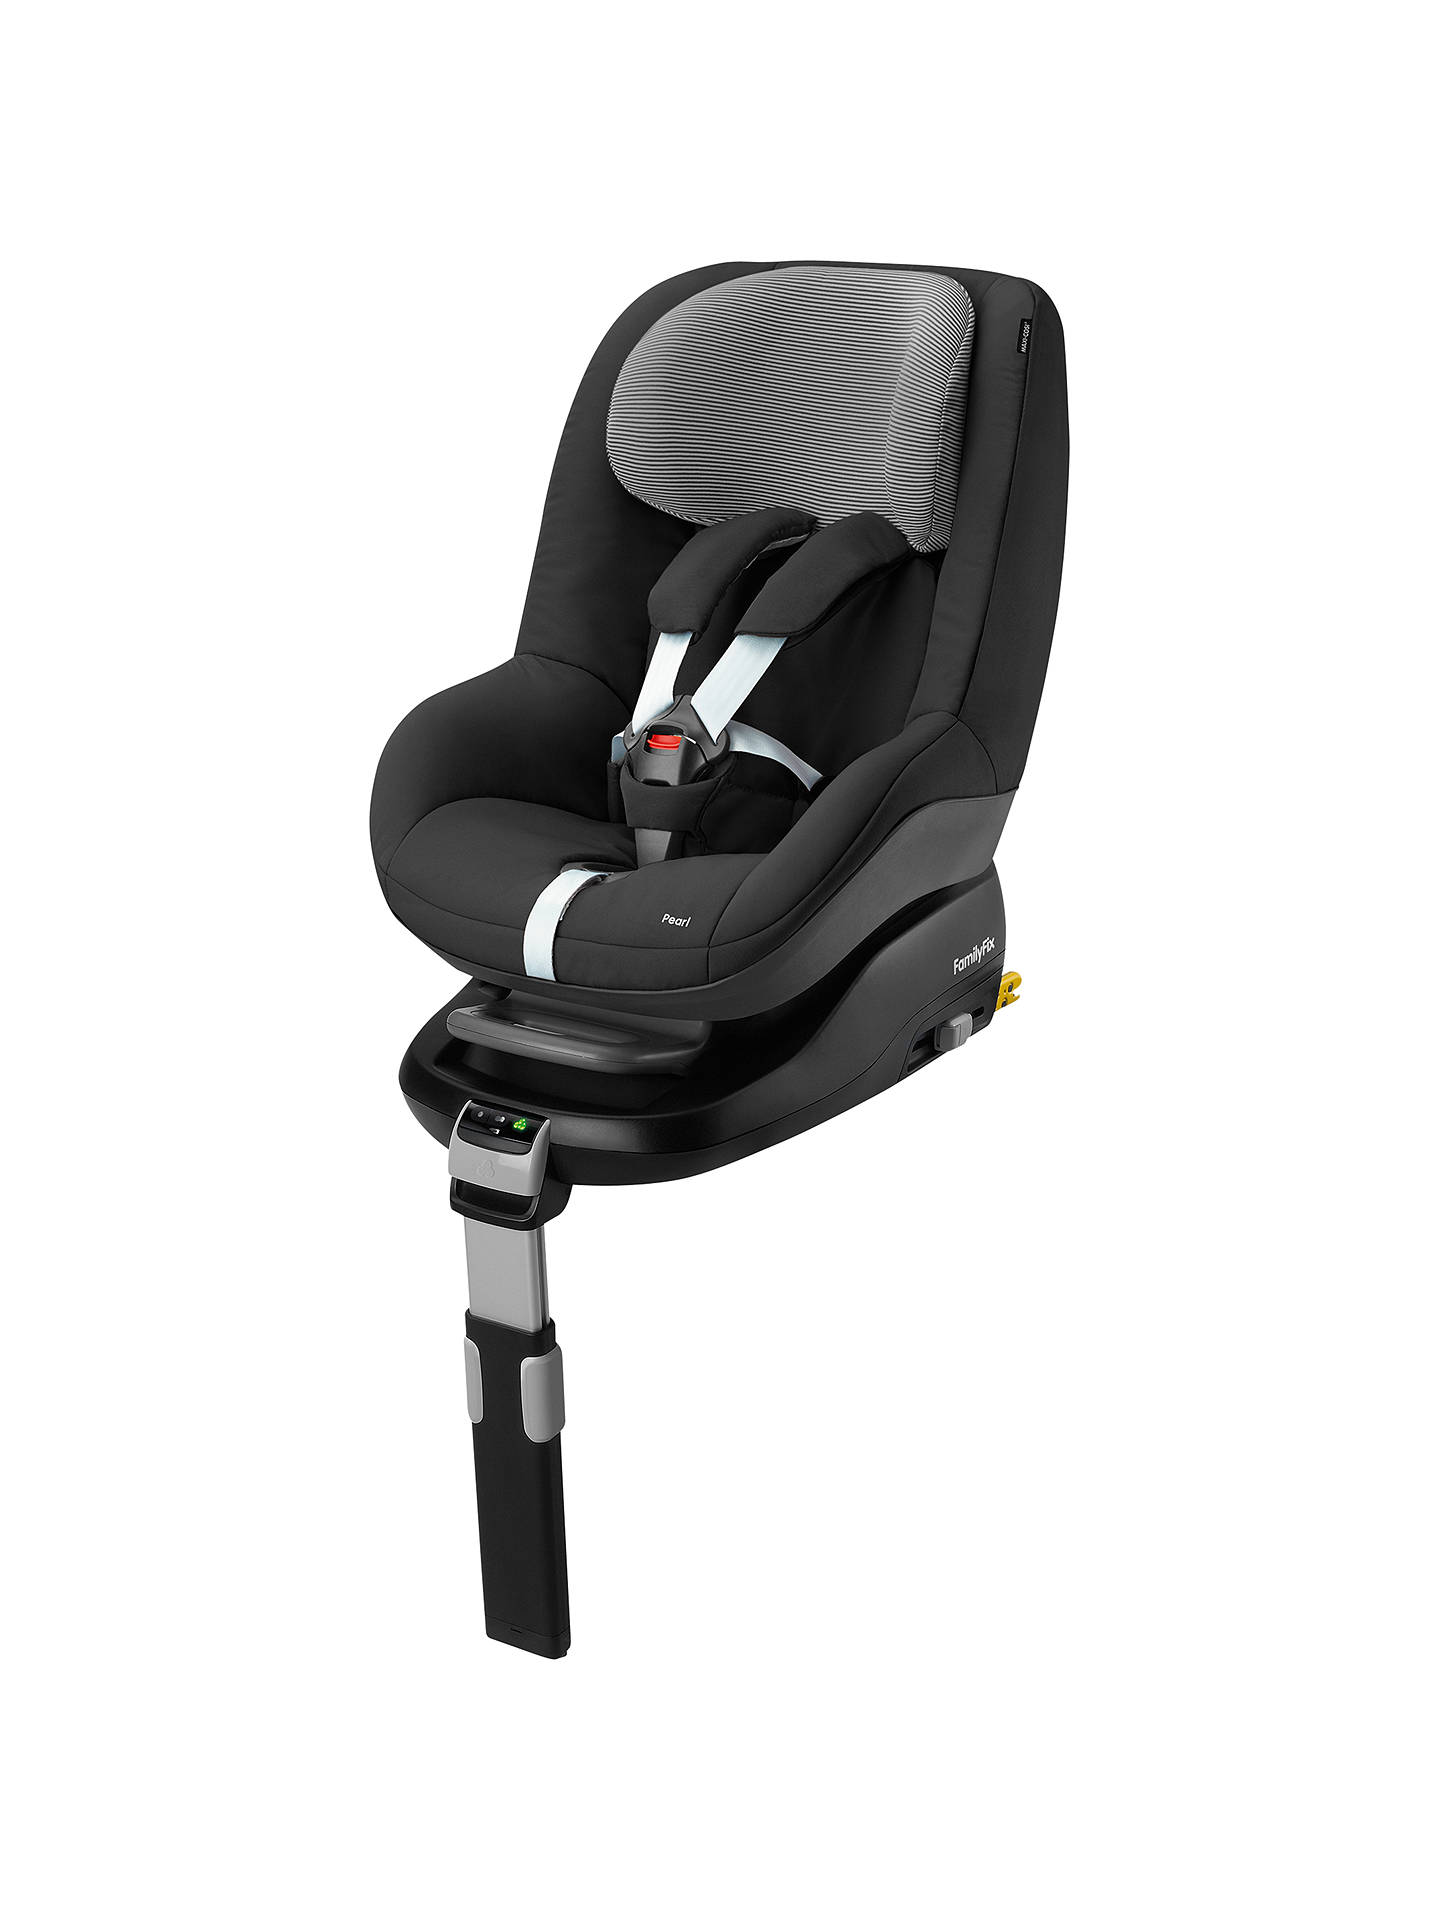 maxi cosi pearl group 1 car seat black raven at john. Black Bedroom Furniture Sets. Home Design Ideas